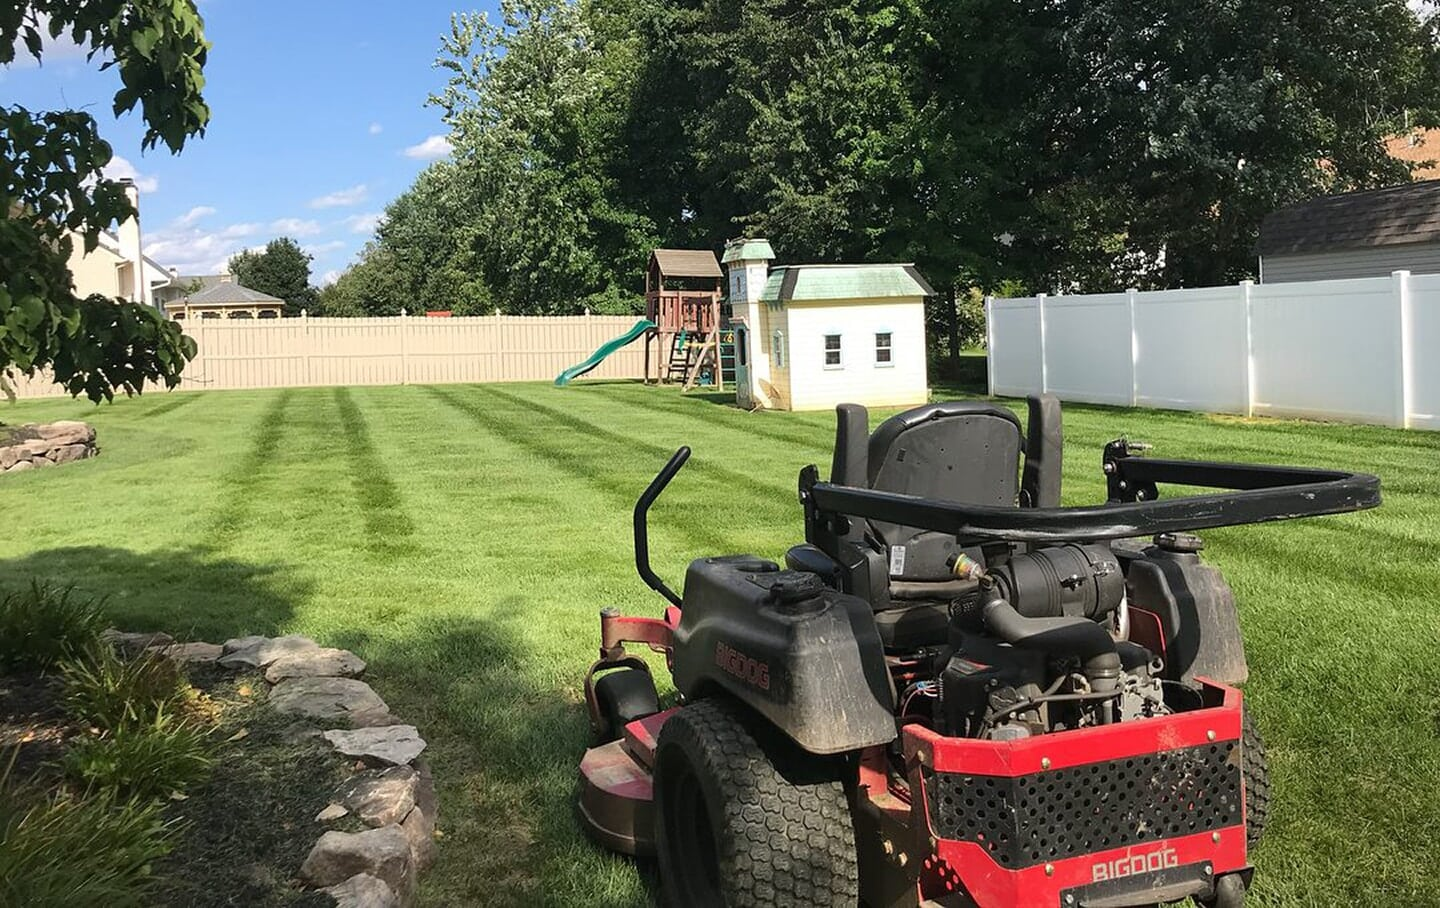 Riding Lawnmower in foreground of back yard